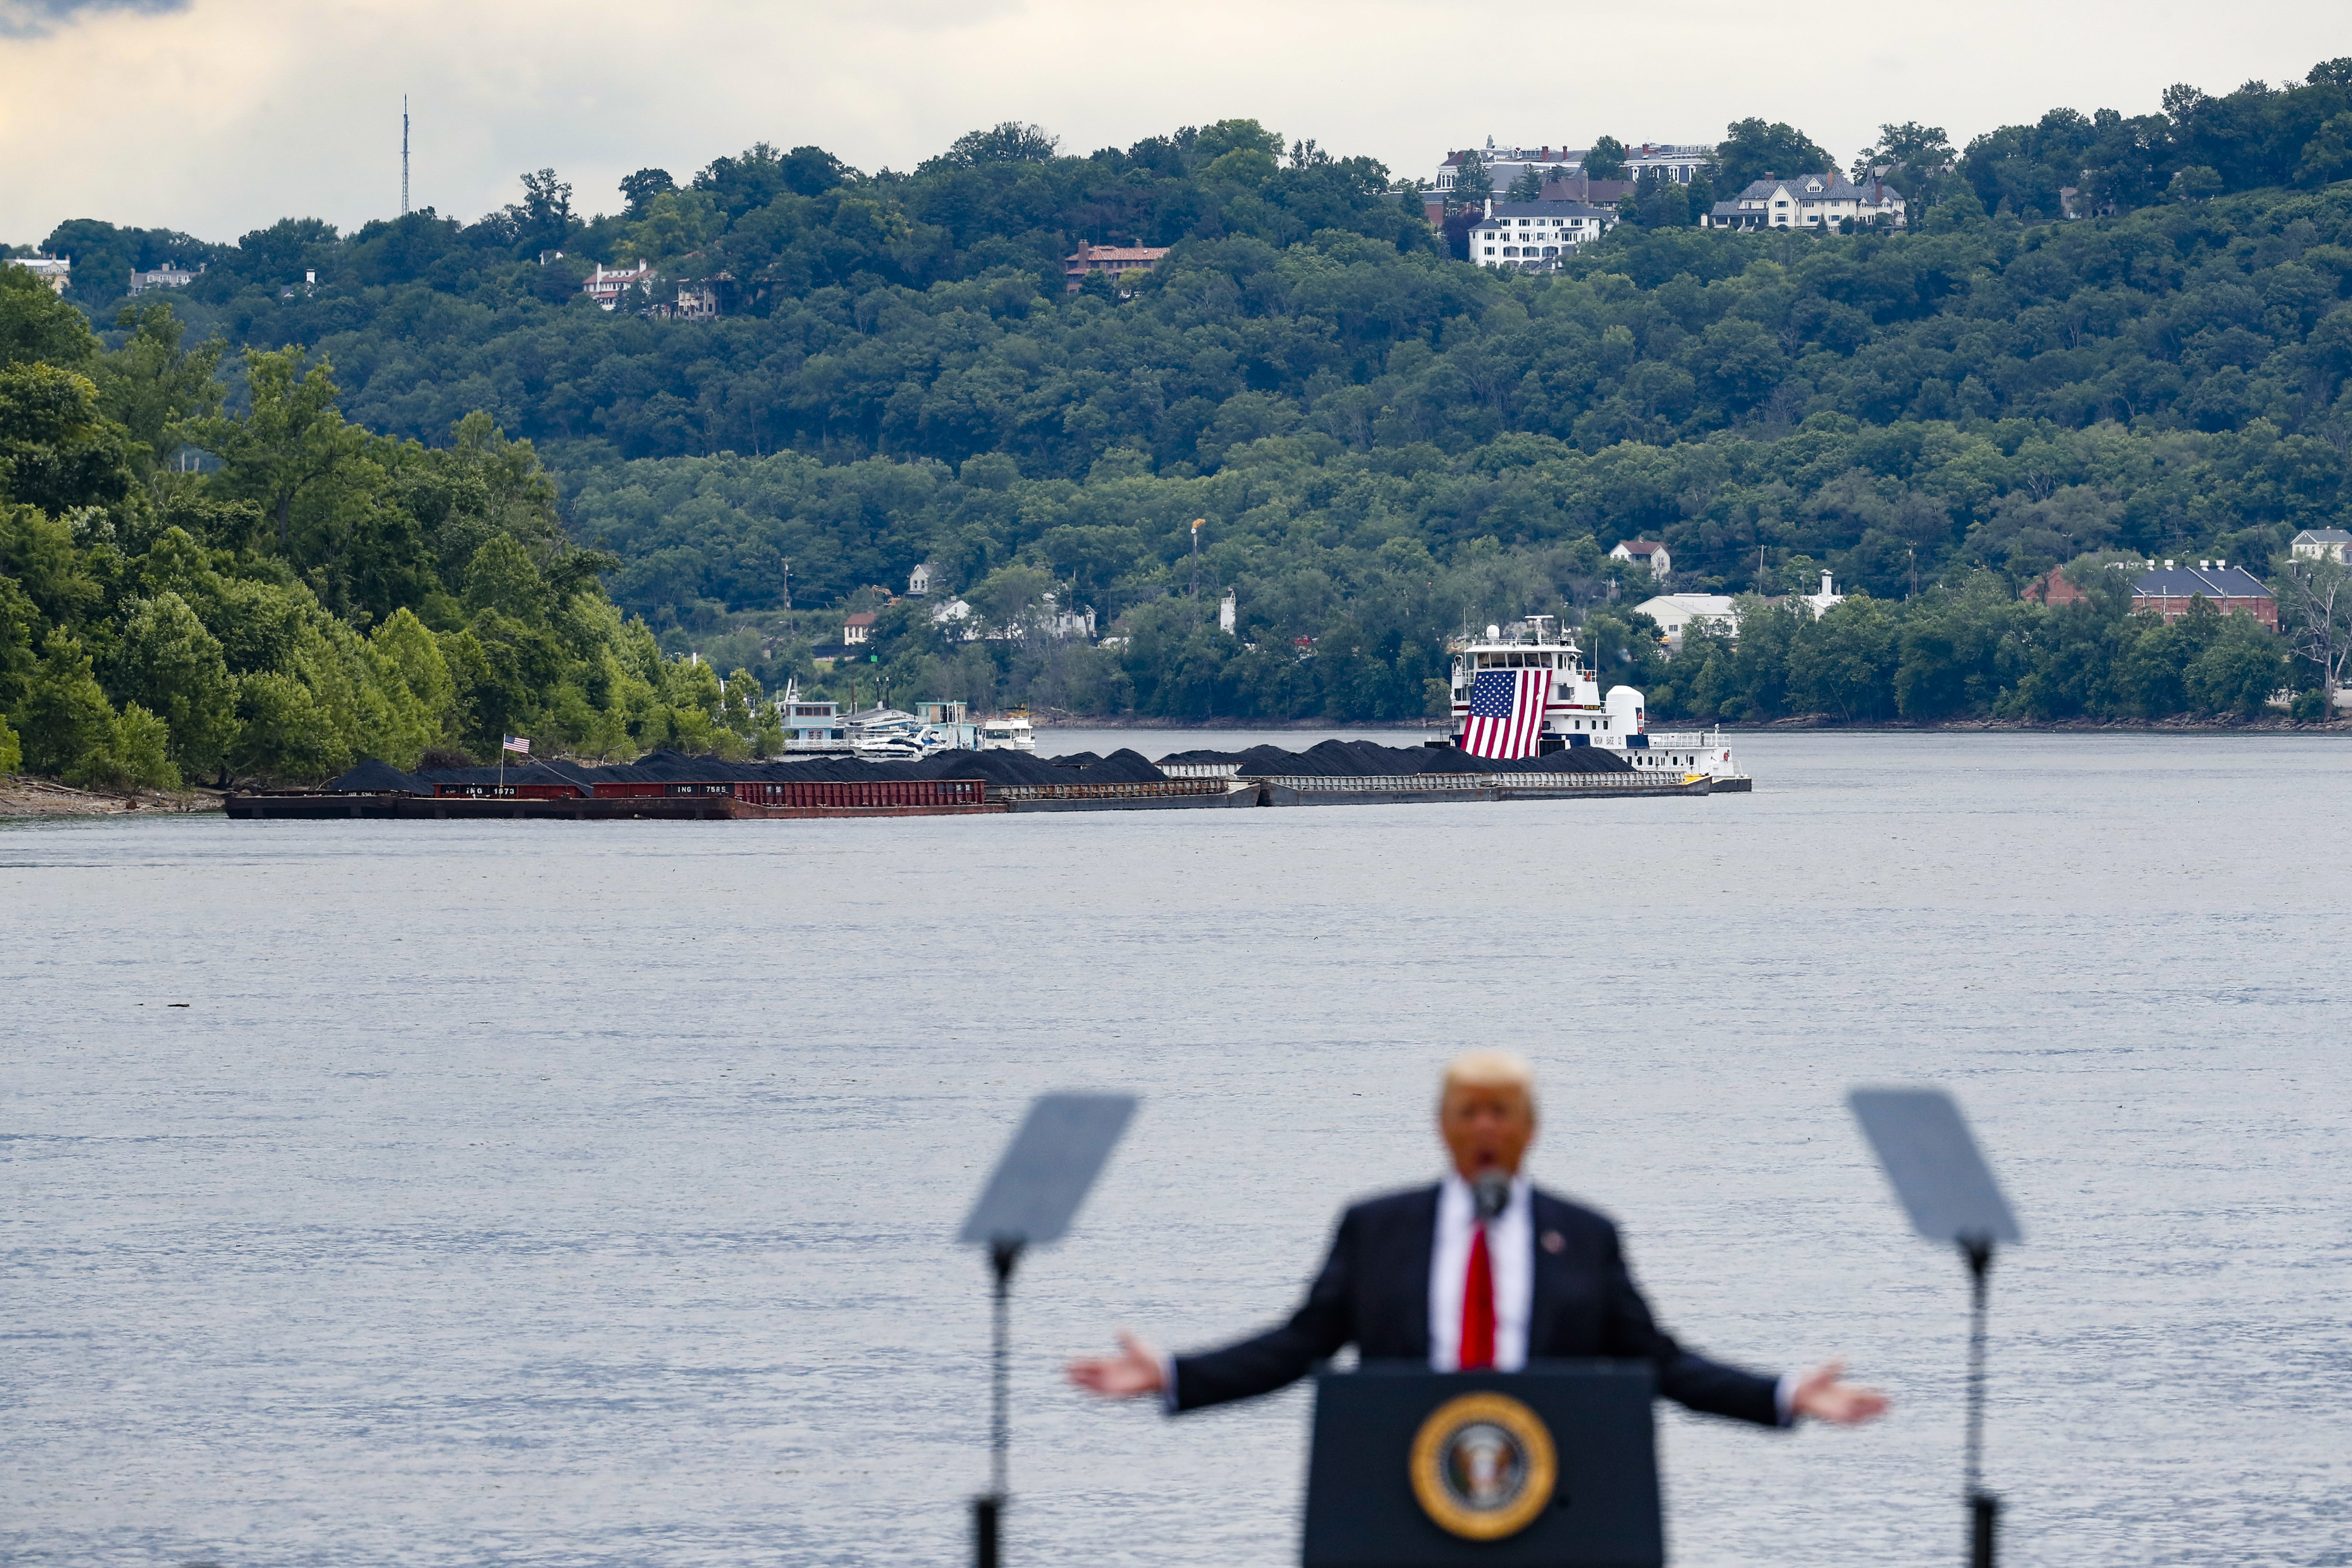 Trump Coal Plants FILE - In this June 7, 2017 file photo, a coal barge is positioned as a backdrop behind President Donald Trump as he speaks during a rally at the Rivertowne Marina in Cincinnati. President Donald Trump personally promised to activate emergency legal authorities to keep dirty or economically uncompetitive coal plants from shutting down, a top American coal company said. The Trump administration now says it has no plans to do so. (AP Photo/John Minchillo, File)